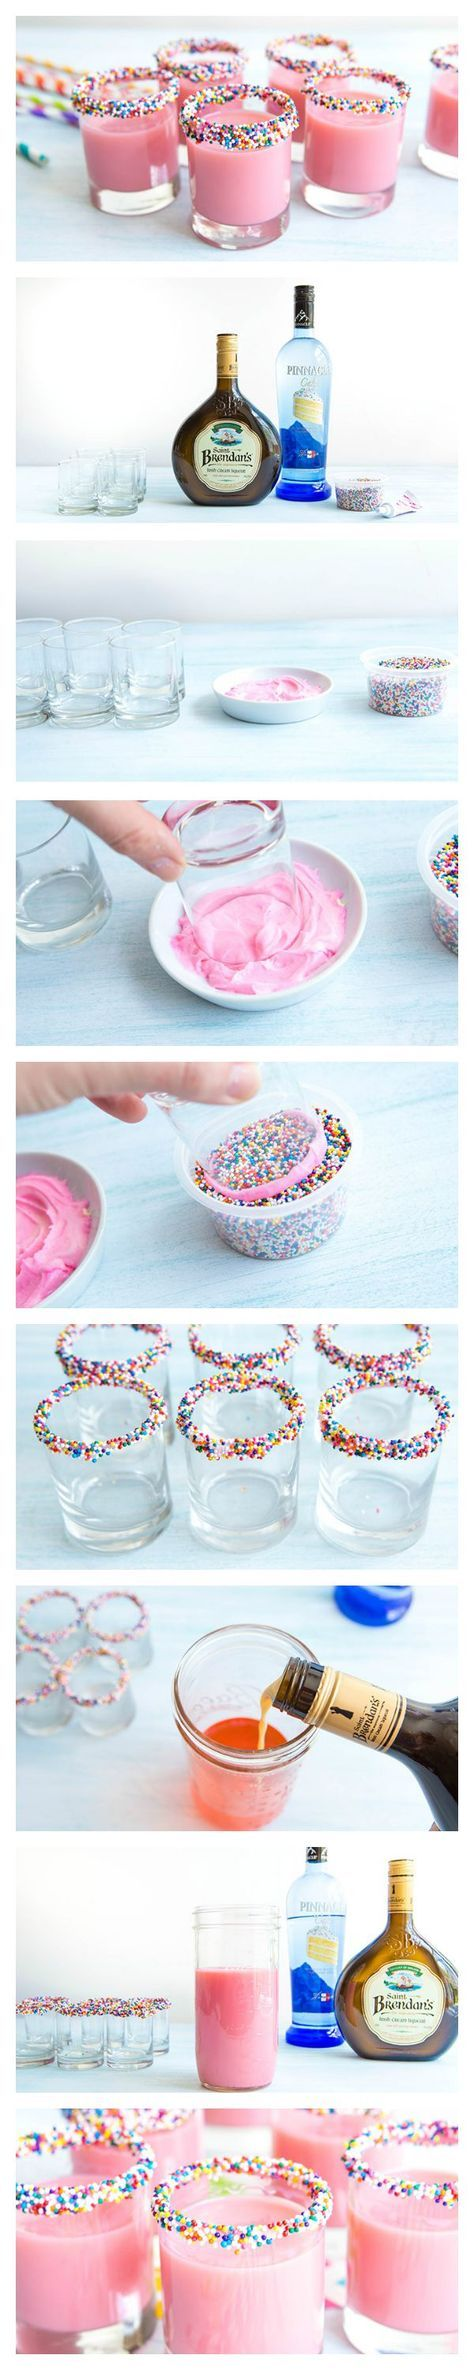 Birthday Cake Shots Recipe Strawberry milk Bright pink and